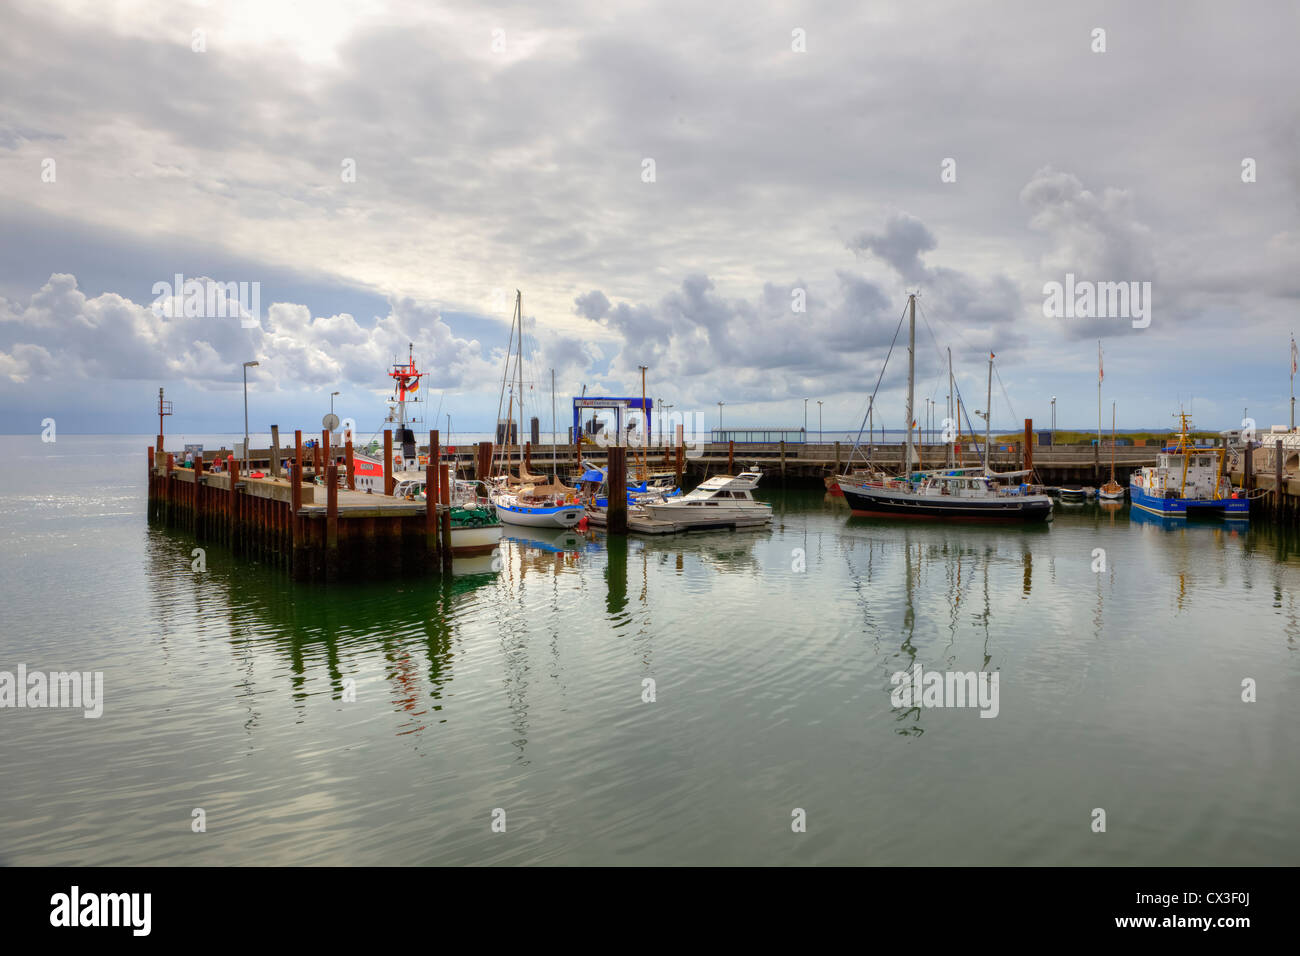 Port, List, Sylt, Schleswig-Holstein, Germany - Stock Image